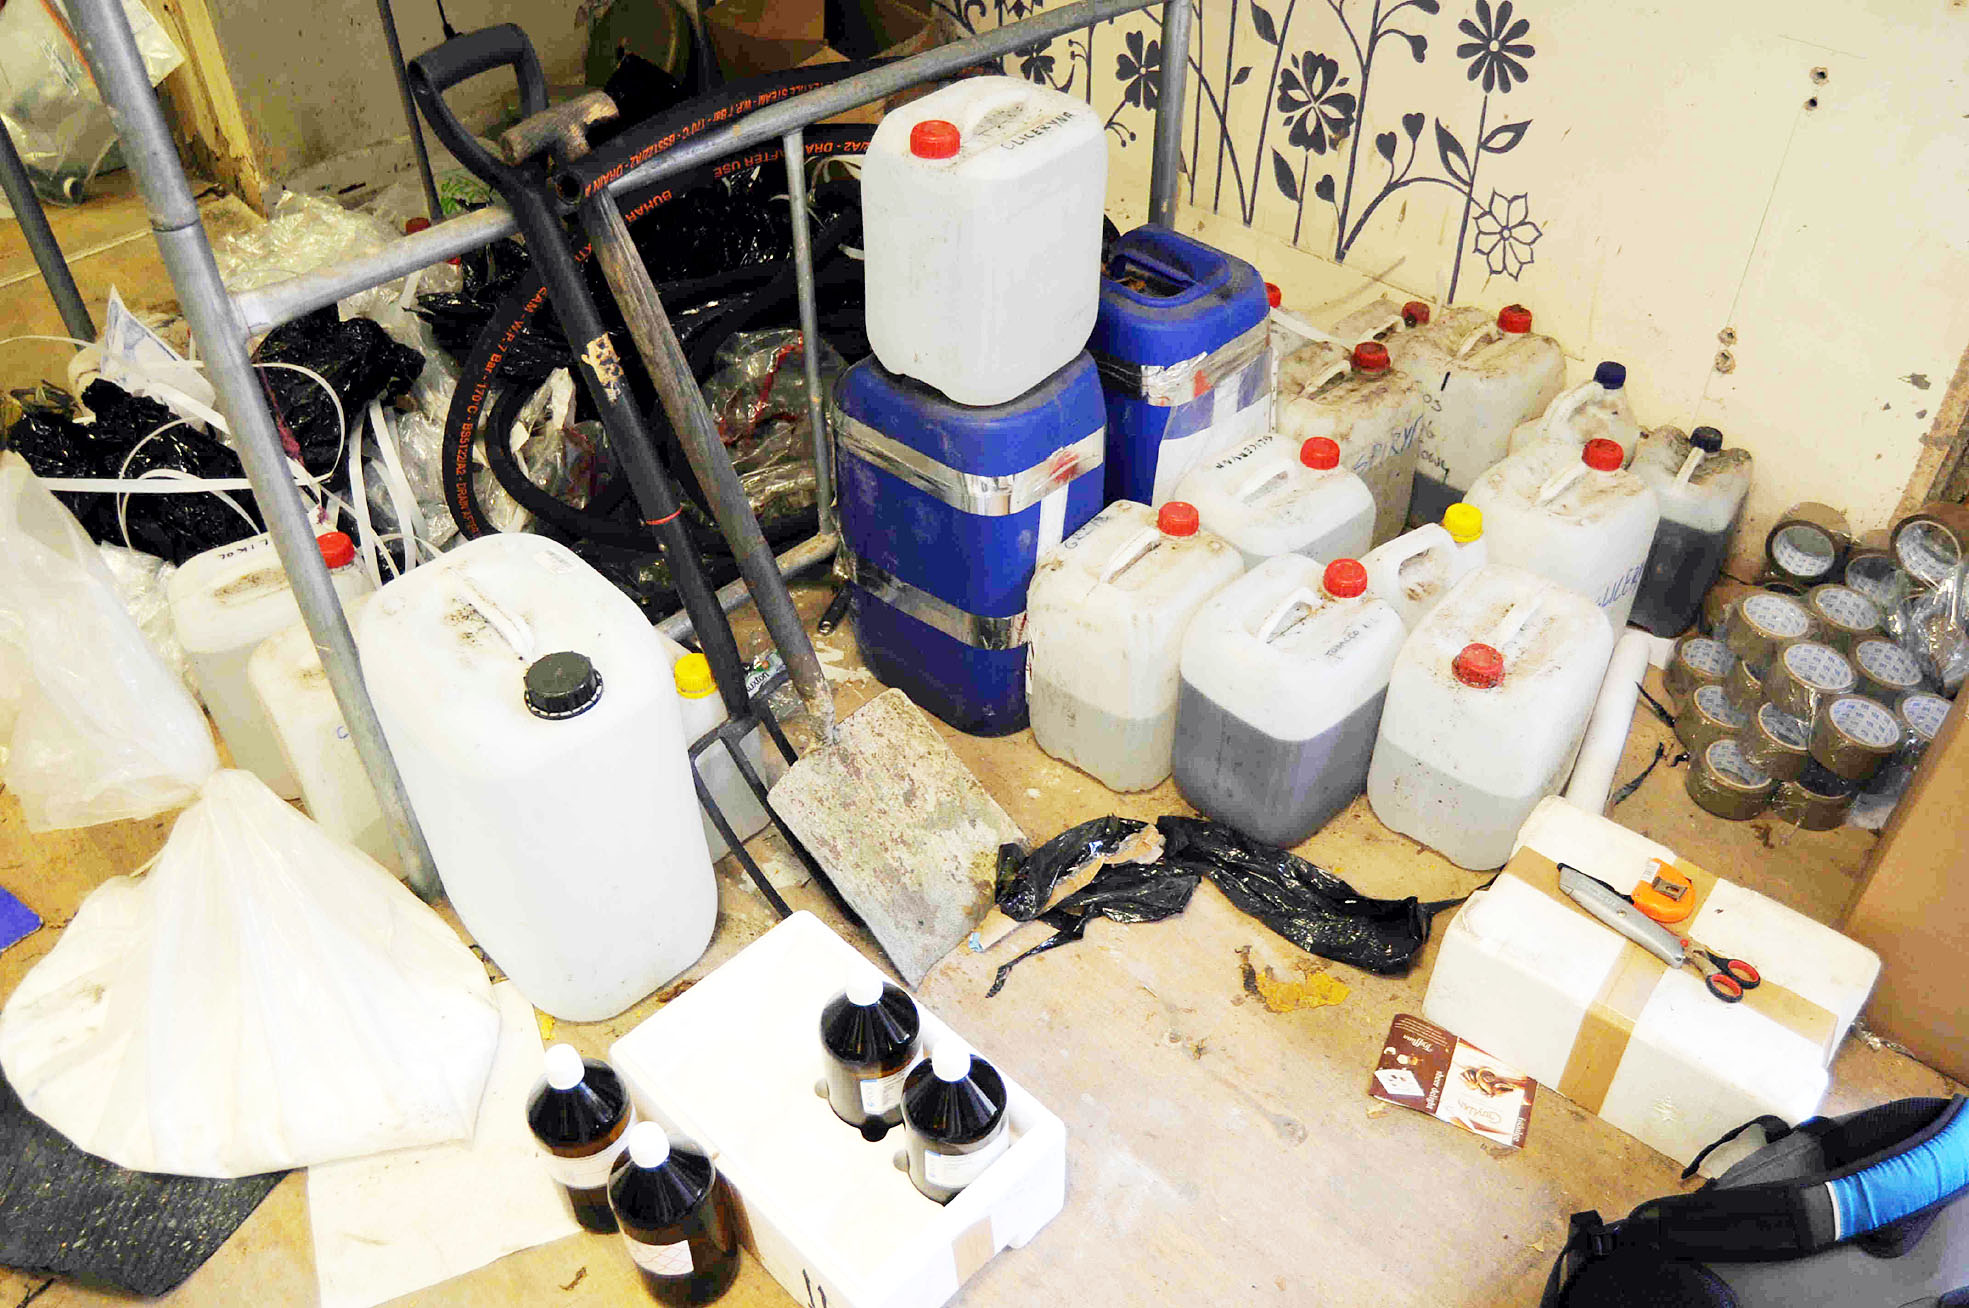 Counterfeit cigarette and tobacco equipment seized in Bury raids